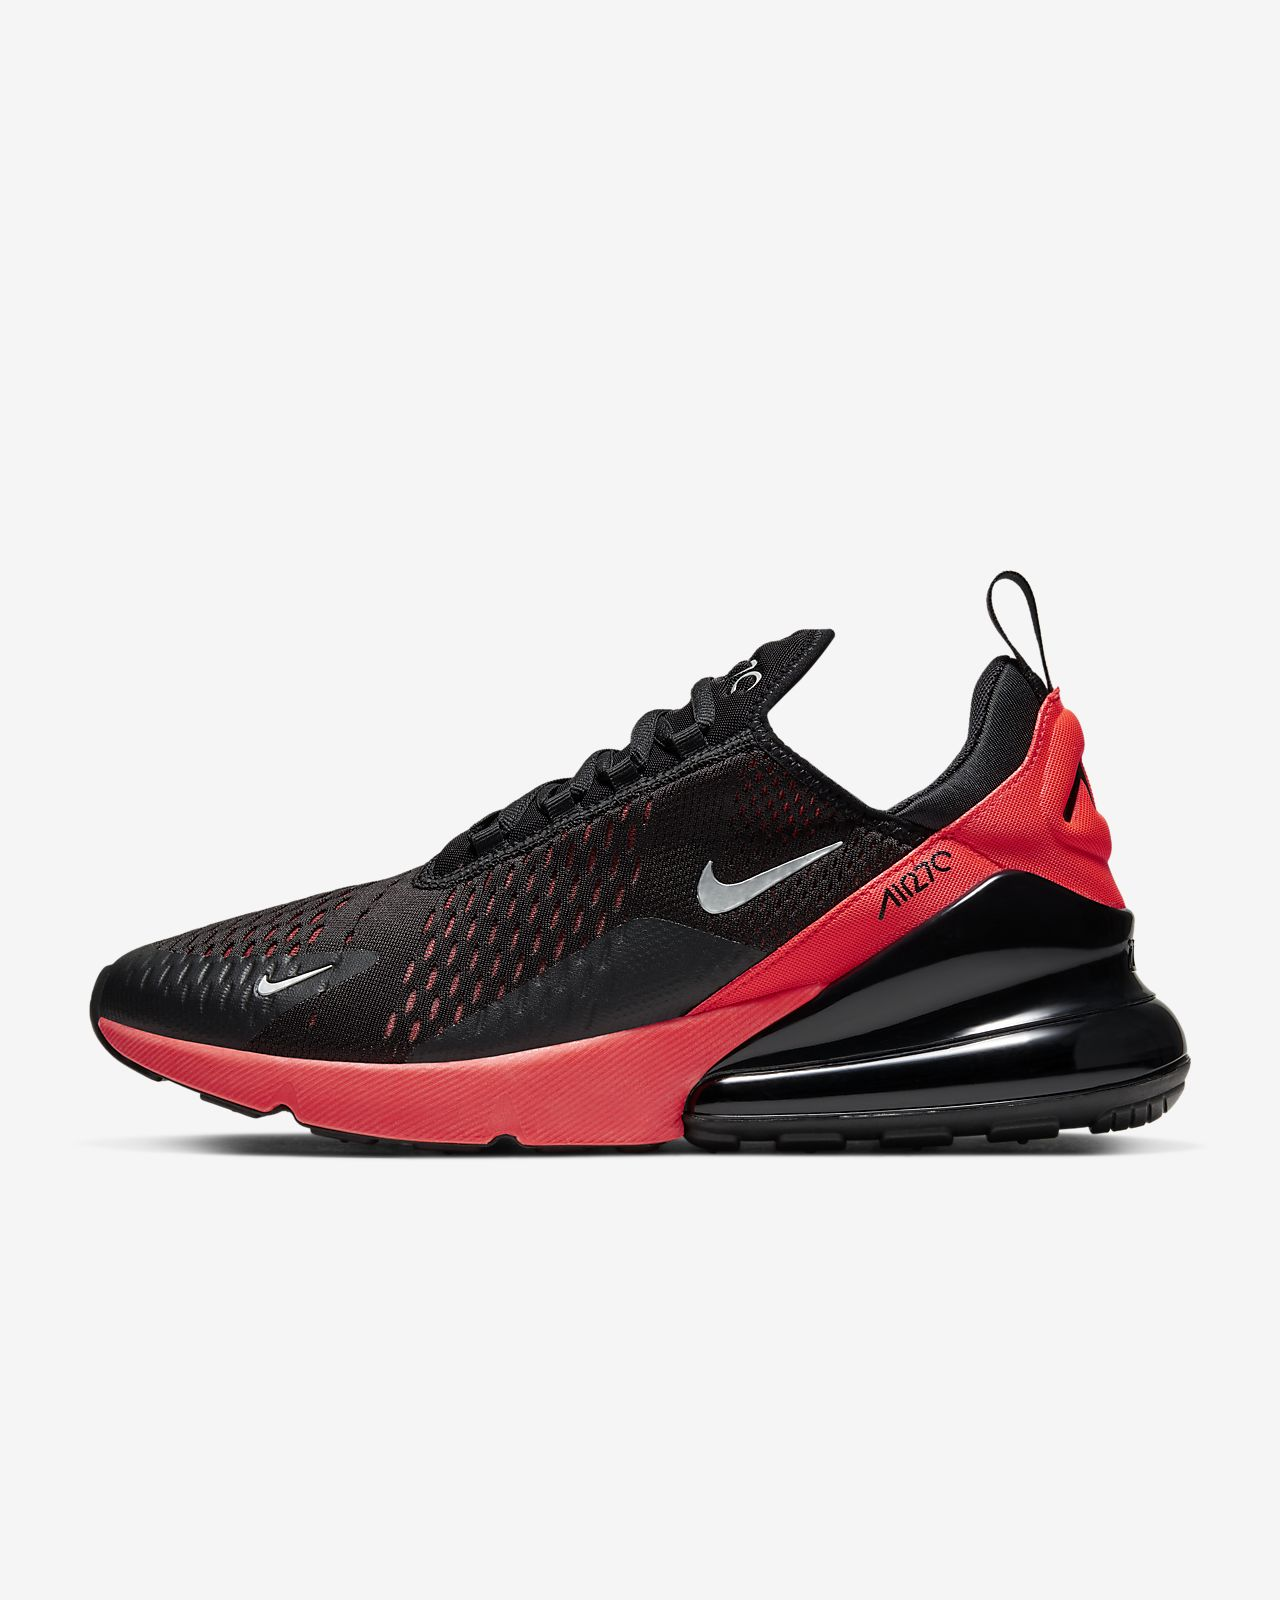 wide range clearance prices sale Nike Air Max 270 Men's Shoe